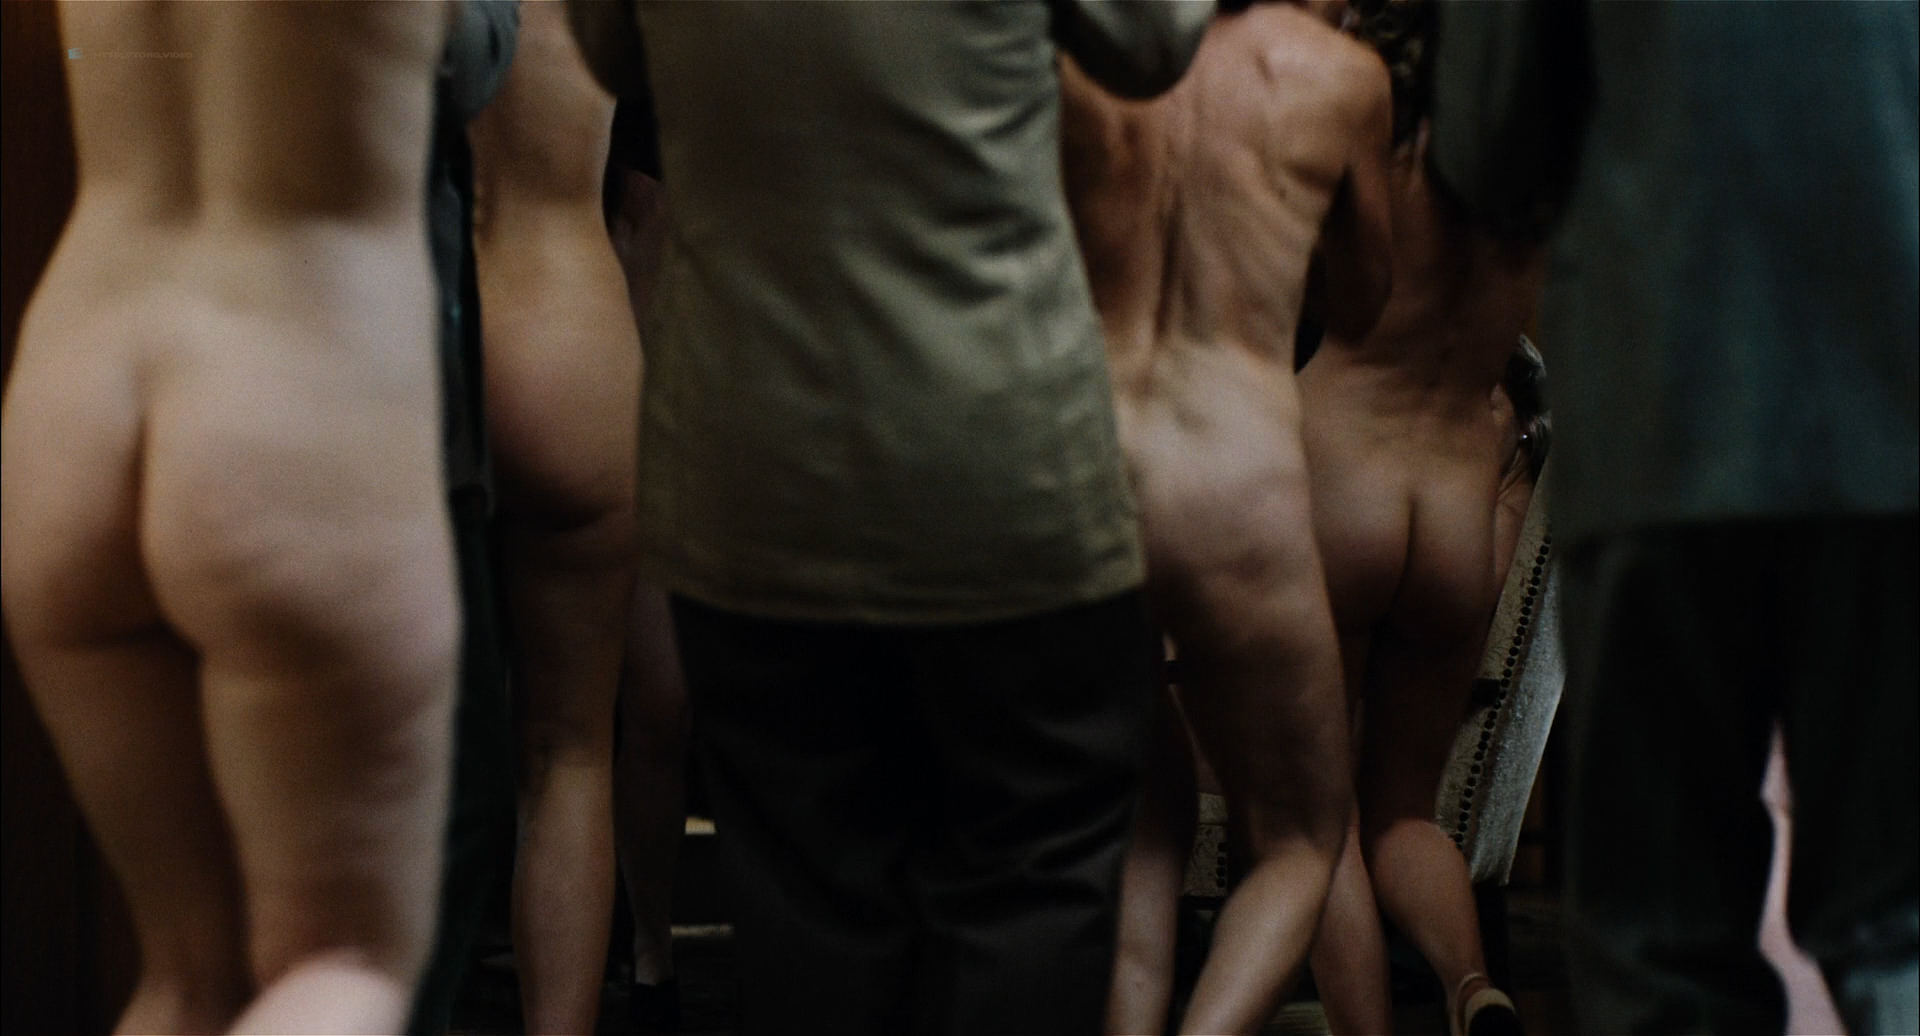 Amy Ferguson nude topless, Liz Clare, Katie Boland nude dancing Amy Adams nude covered and Jennifer Neala Page nude sex - The Master (2012) HD 1080p BluRay (12)